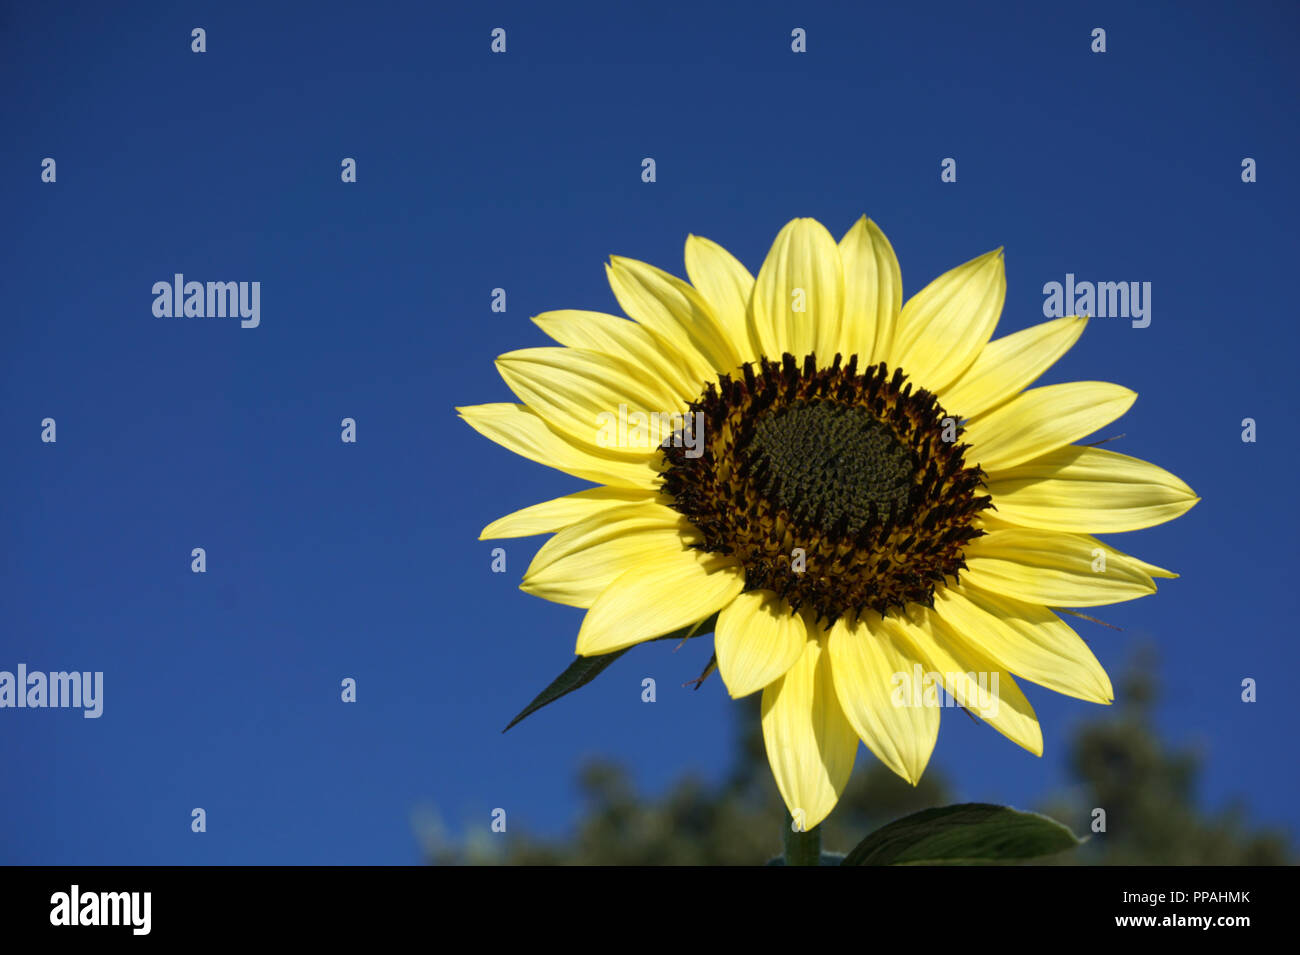 Autumn big sunflower flower close up on the beautiful blue sky background with free copy space - Stock Image